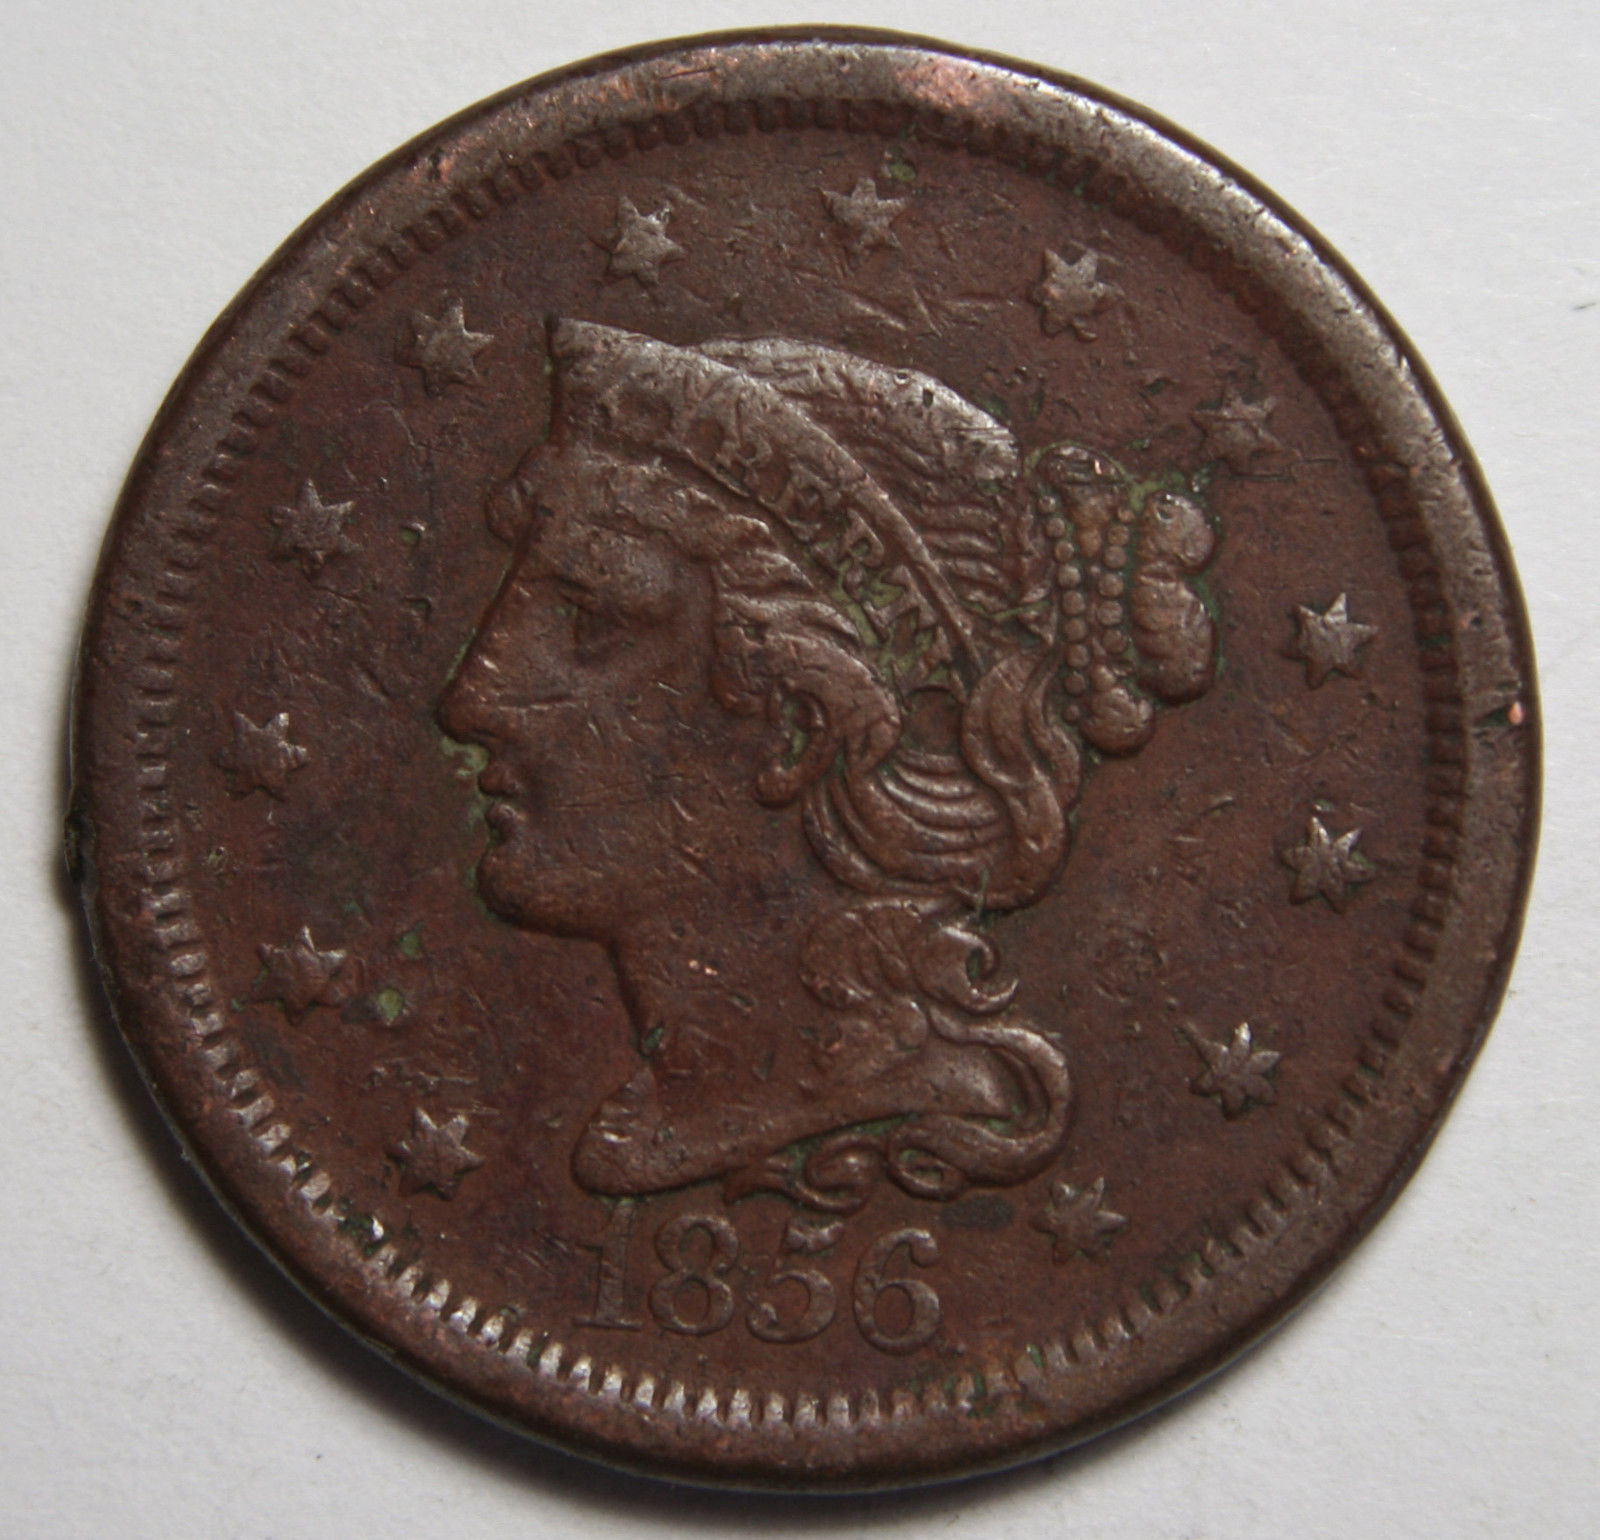 1856 Large Cent Liberty Braided Hair Head Coin Lot # MZ 4108